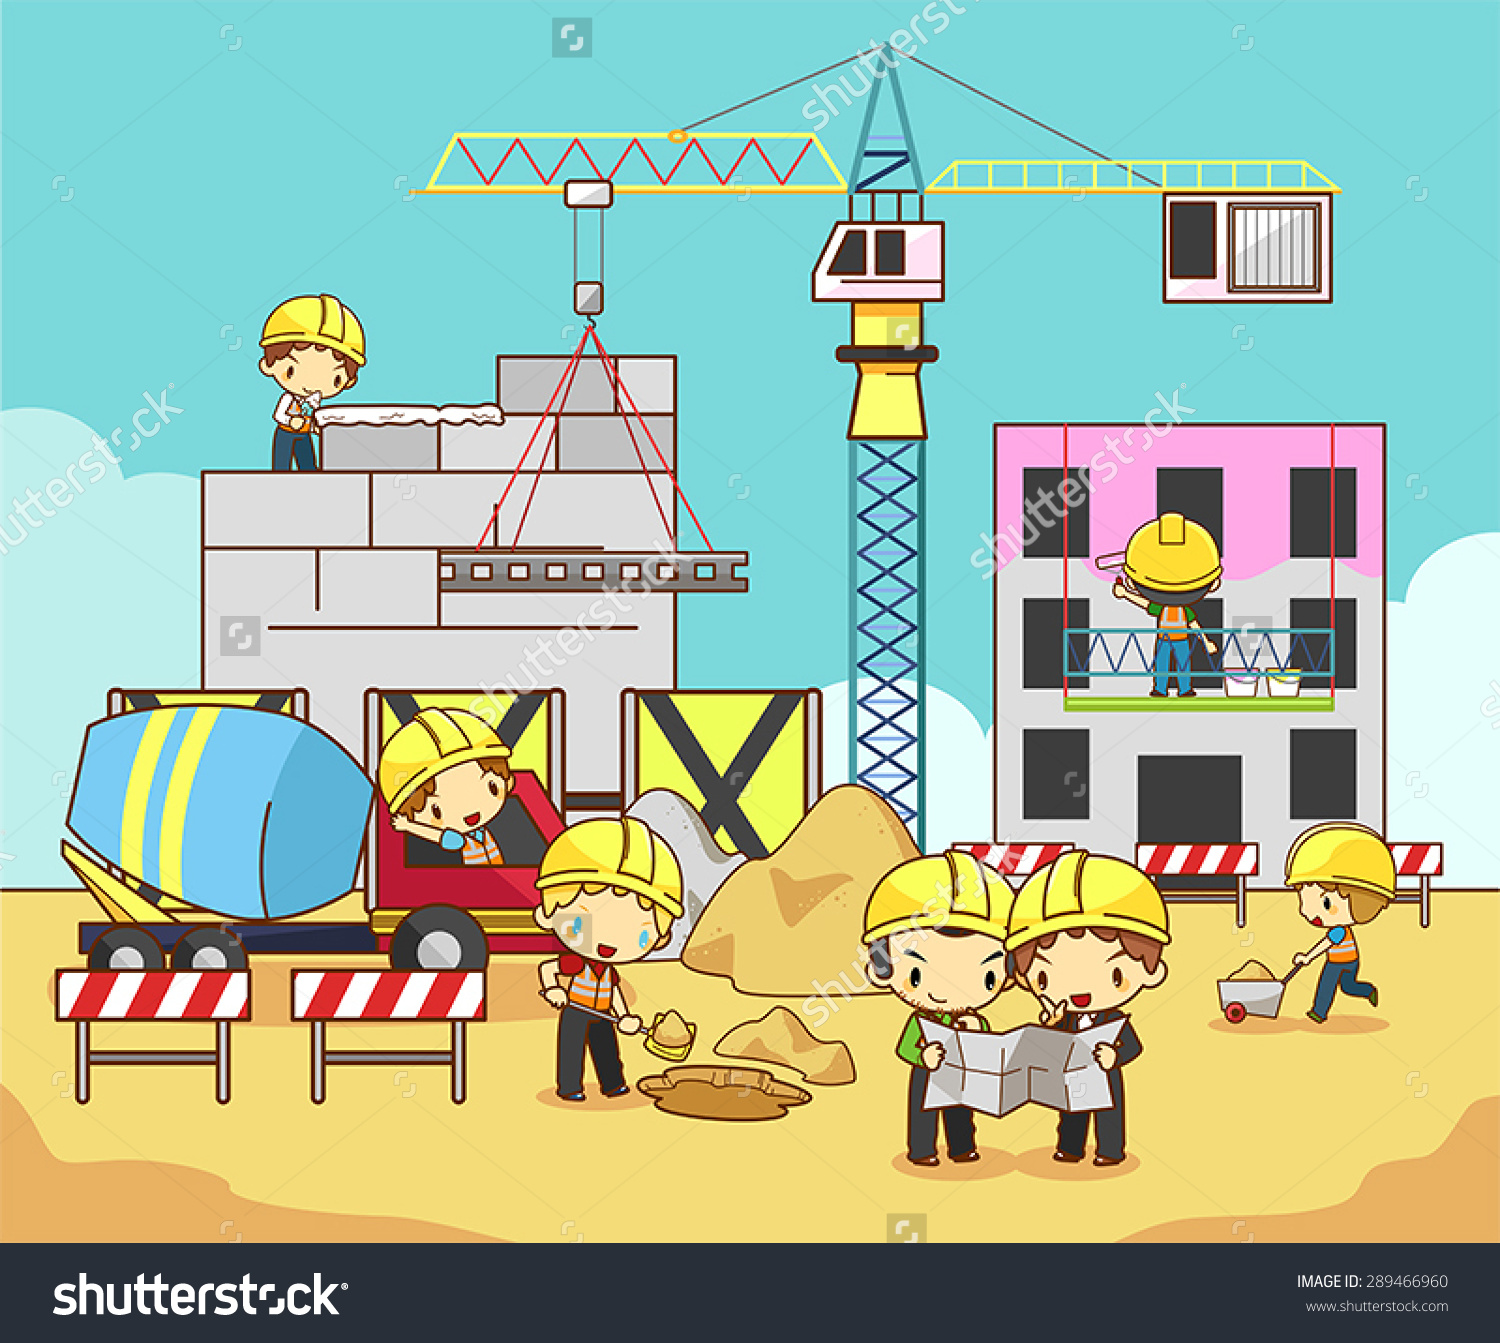 Construction site background clipart black and white library Construction Site Vector Clip Art Free – Clipart Free Download black and white library